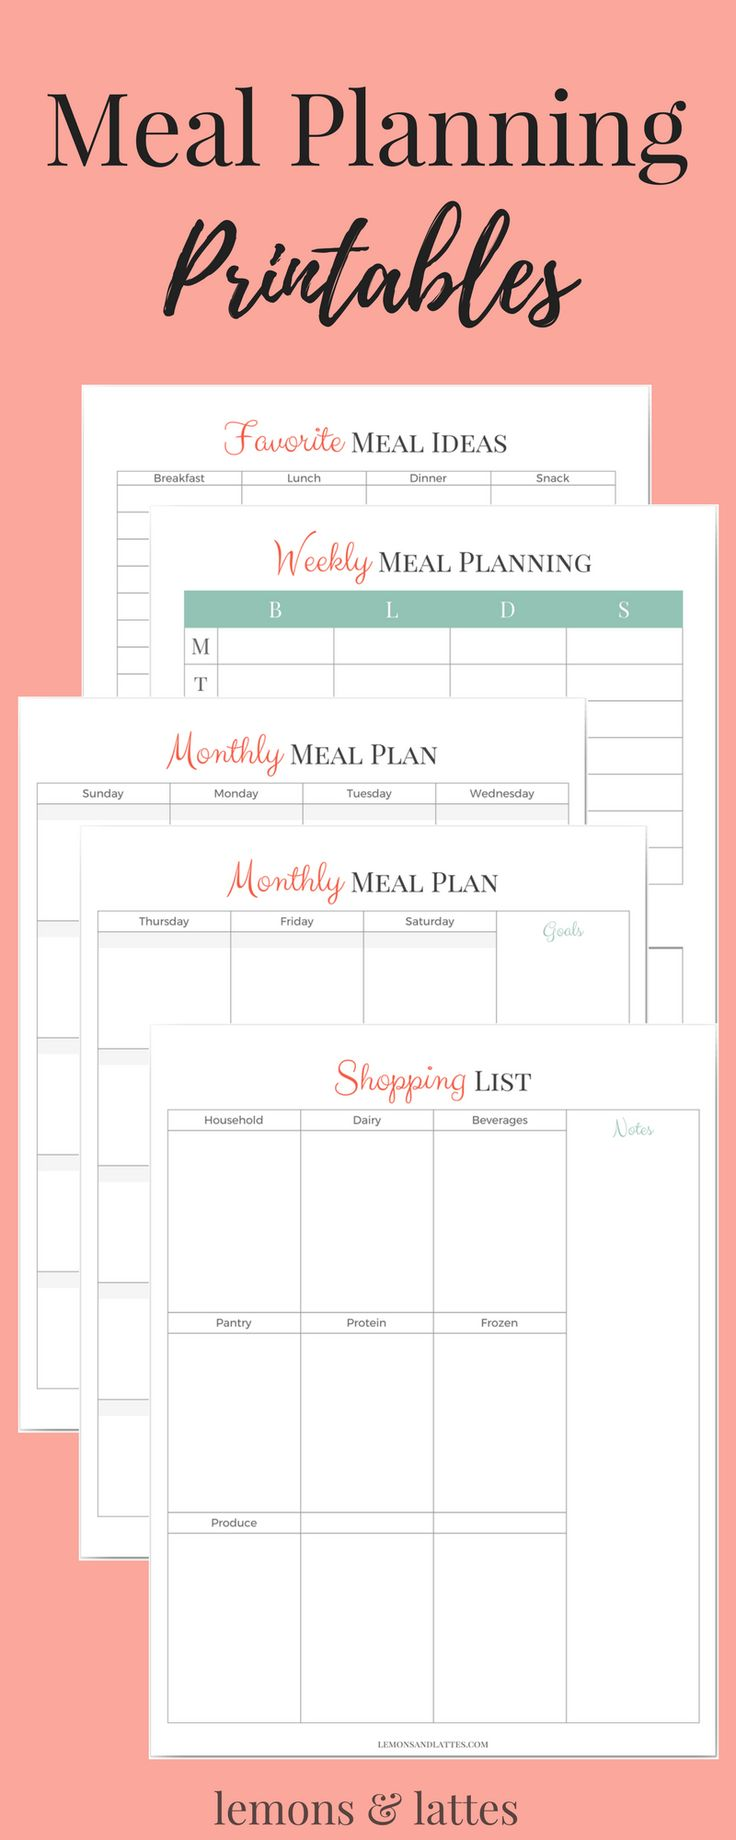 Overwhelmed with what's for dinner? Join our blog waiting list + newsletter & snag your meal planning printables so that you can get organized once and for all.